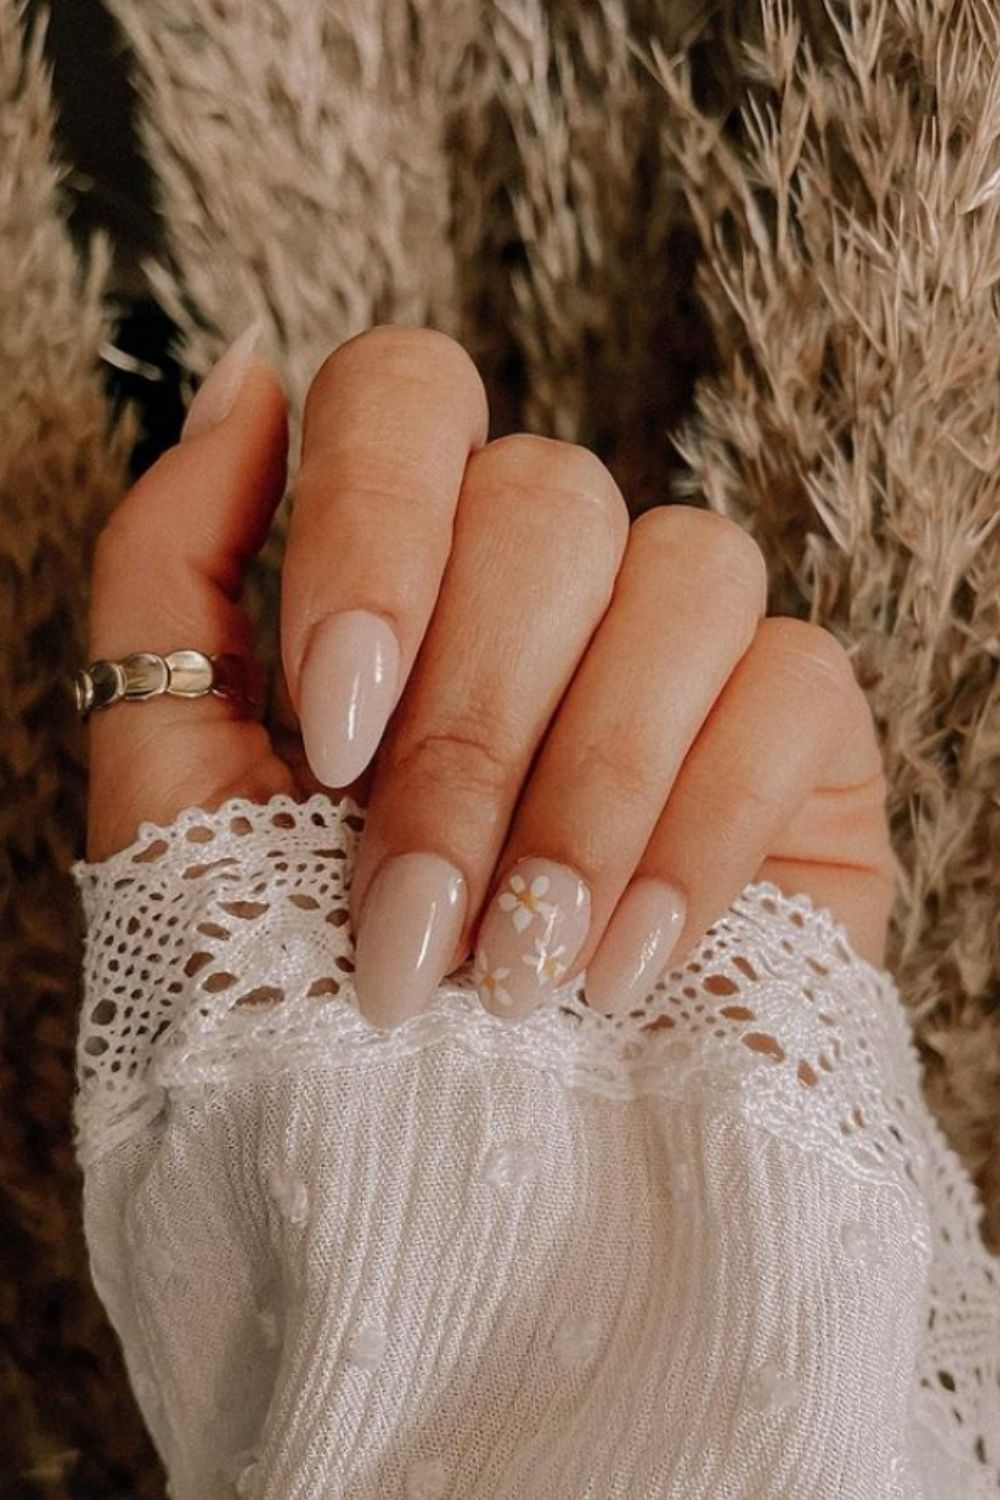 FLOWER NAIL DESIGNS   36 AMAZING NAIL IDEAS TO INSPIRE YOUR SUMMER 2021